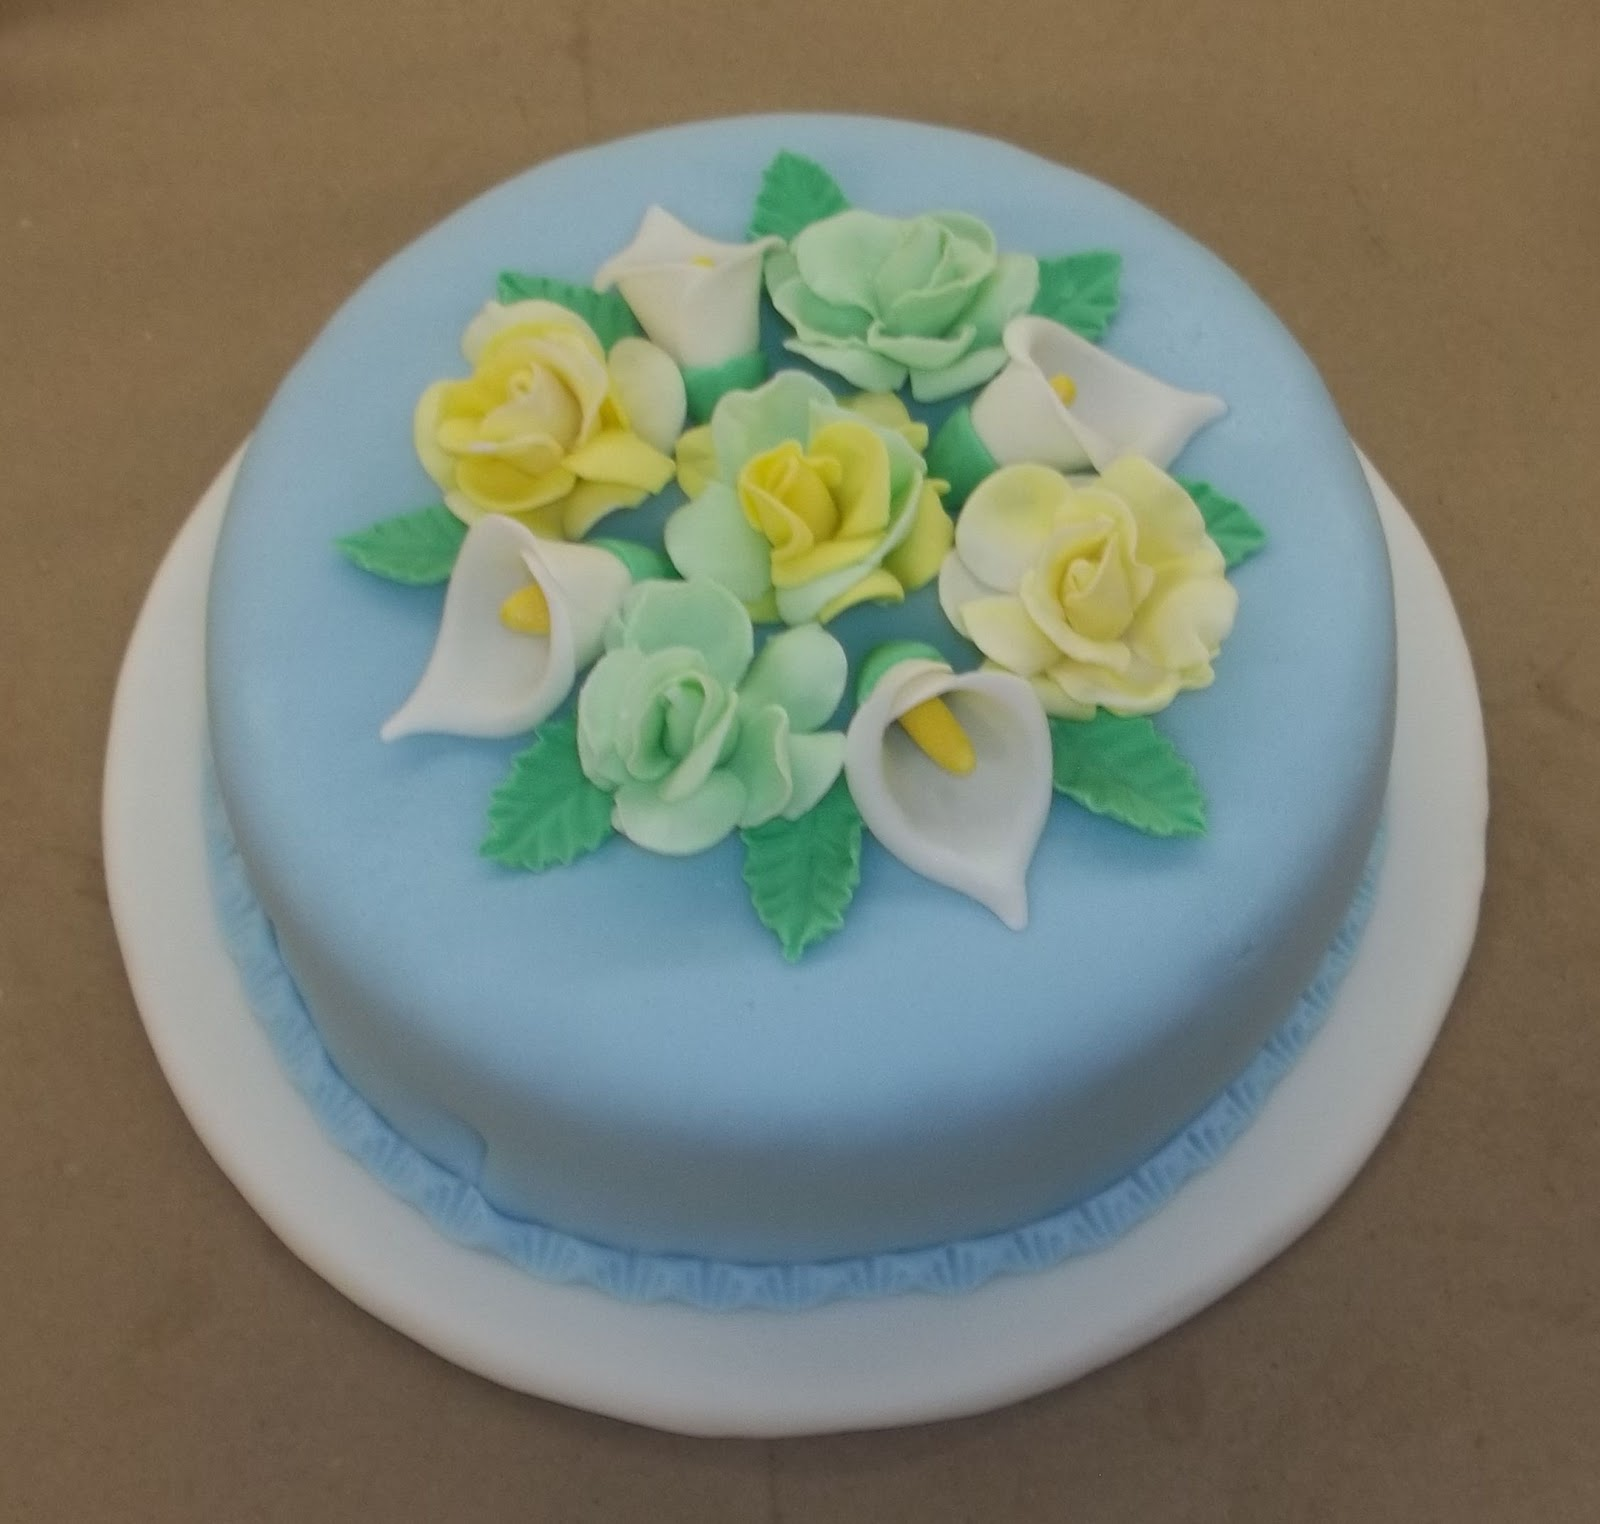 Cake Decorating Classes Central Nj : Wilton Classes and Cakes: Enjoy these cakes from our ...